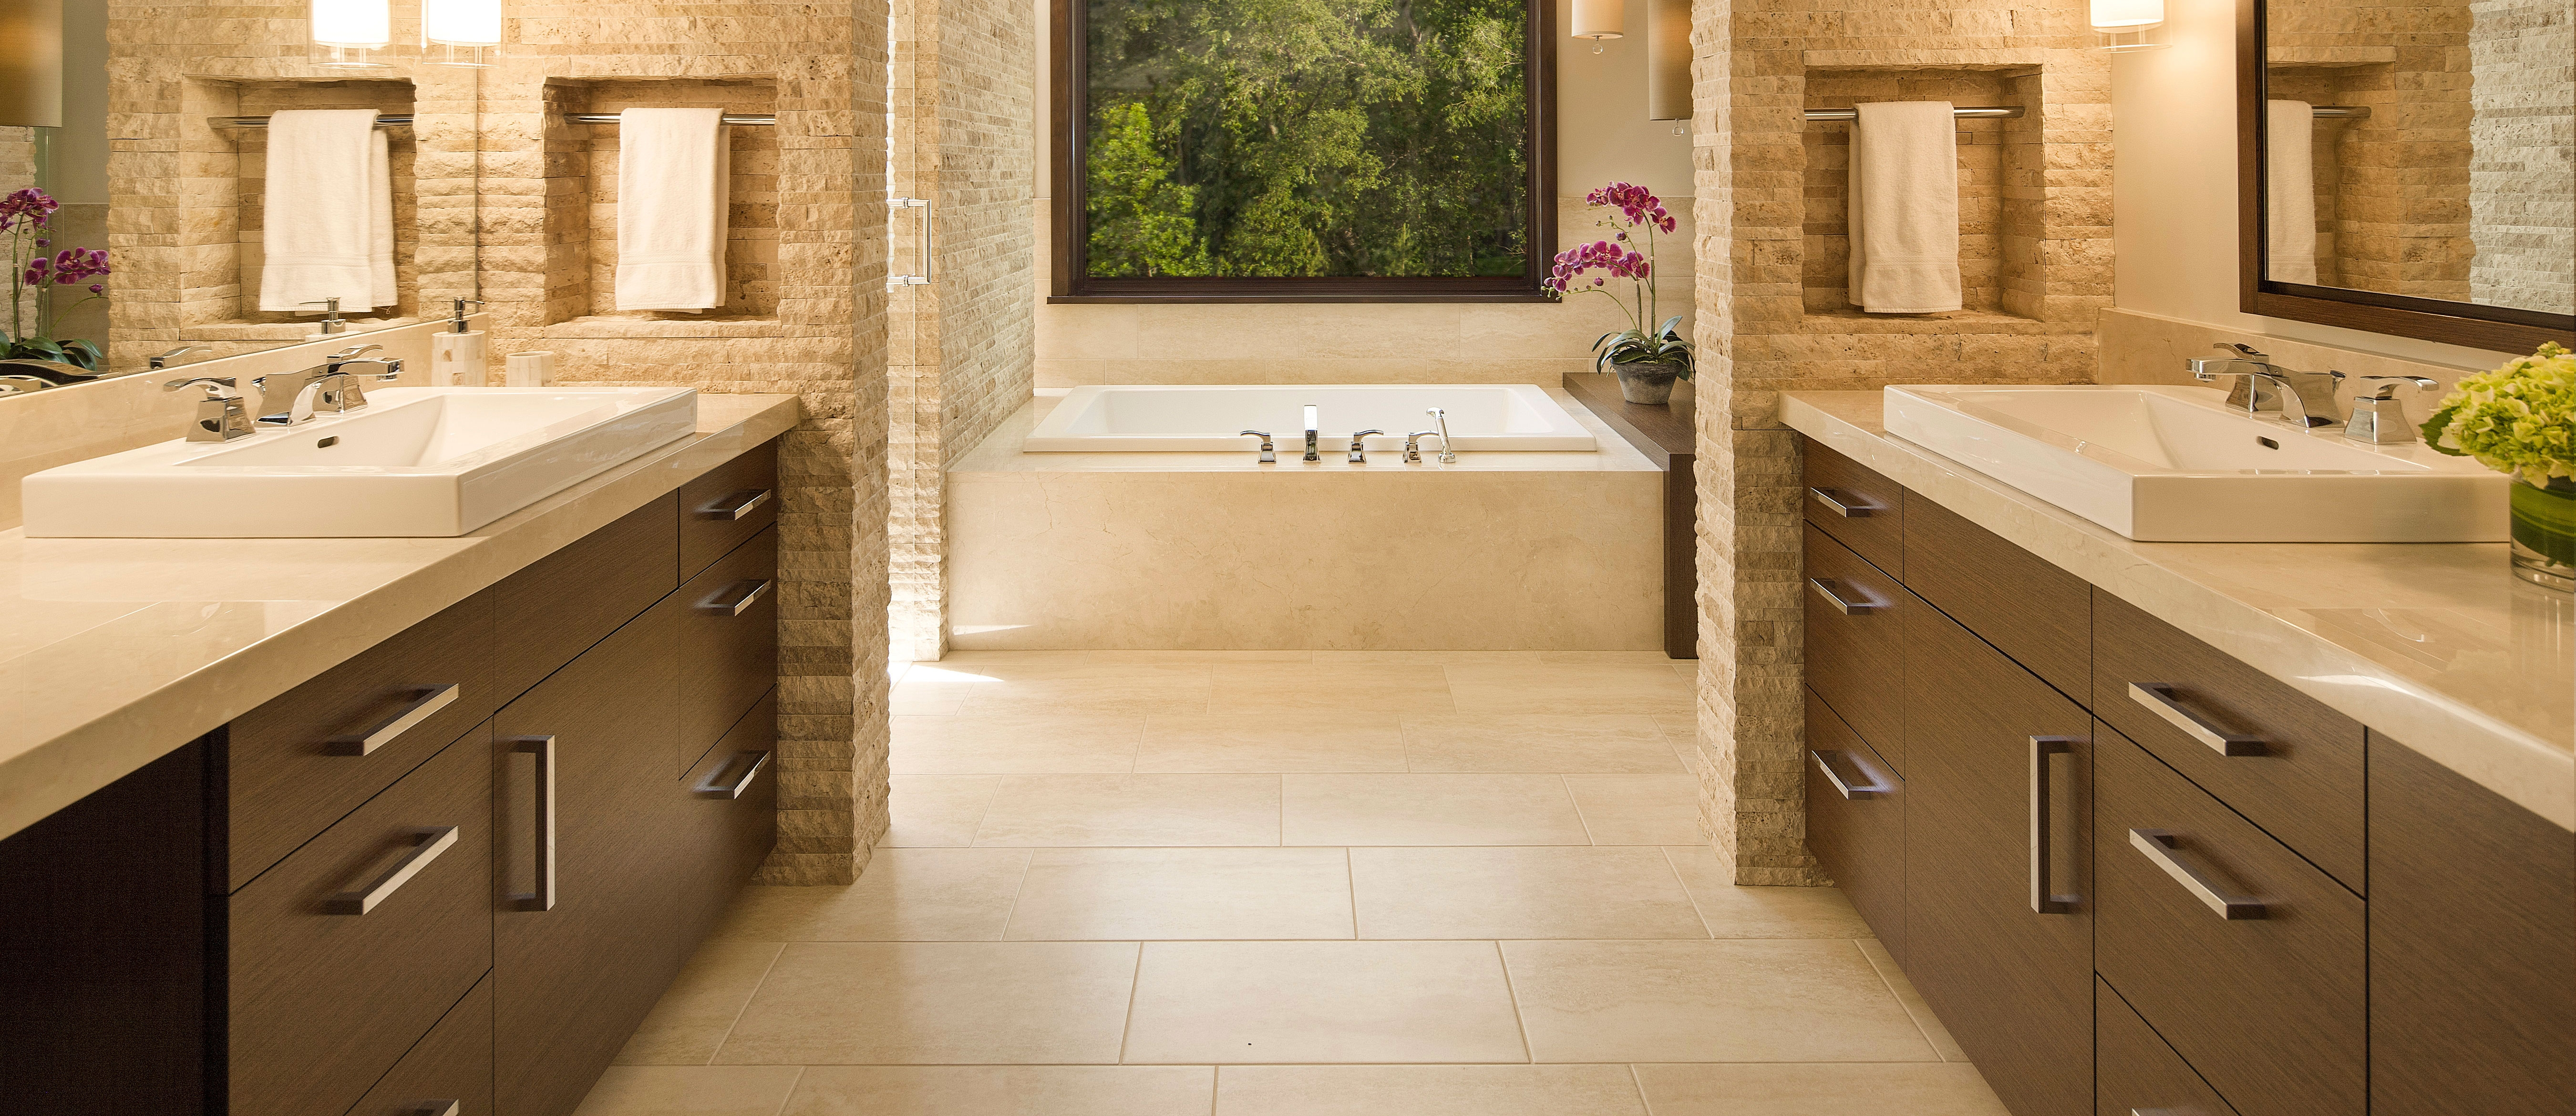 Ideas, bathtubsfaucets north county plumbing palm beach county intended for dimensions 5402 x 2340  .